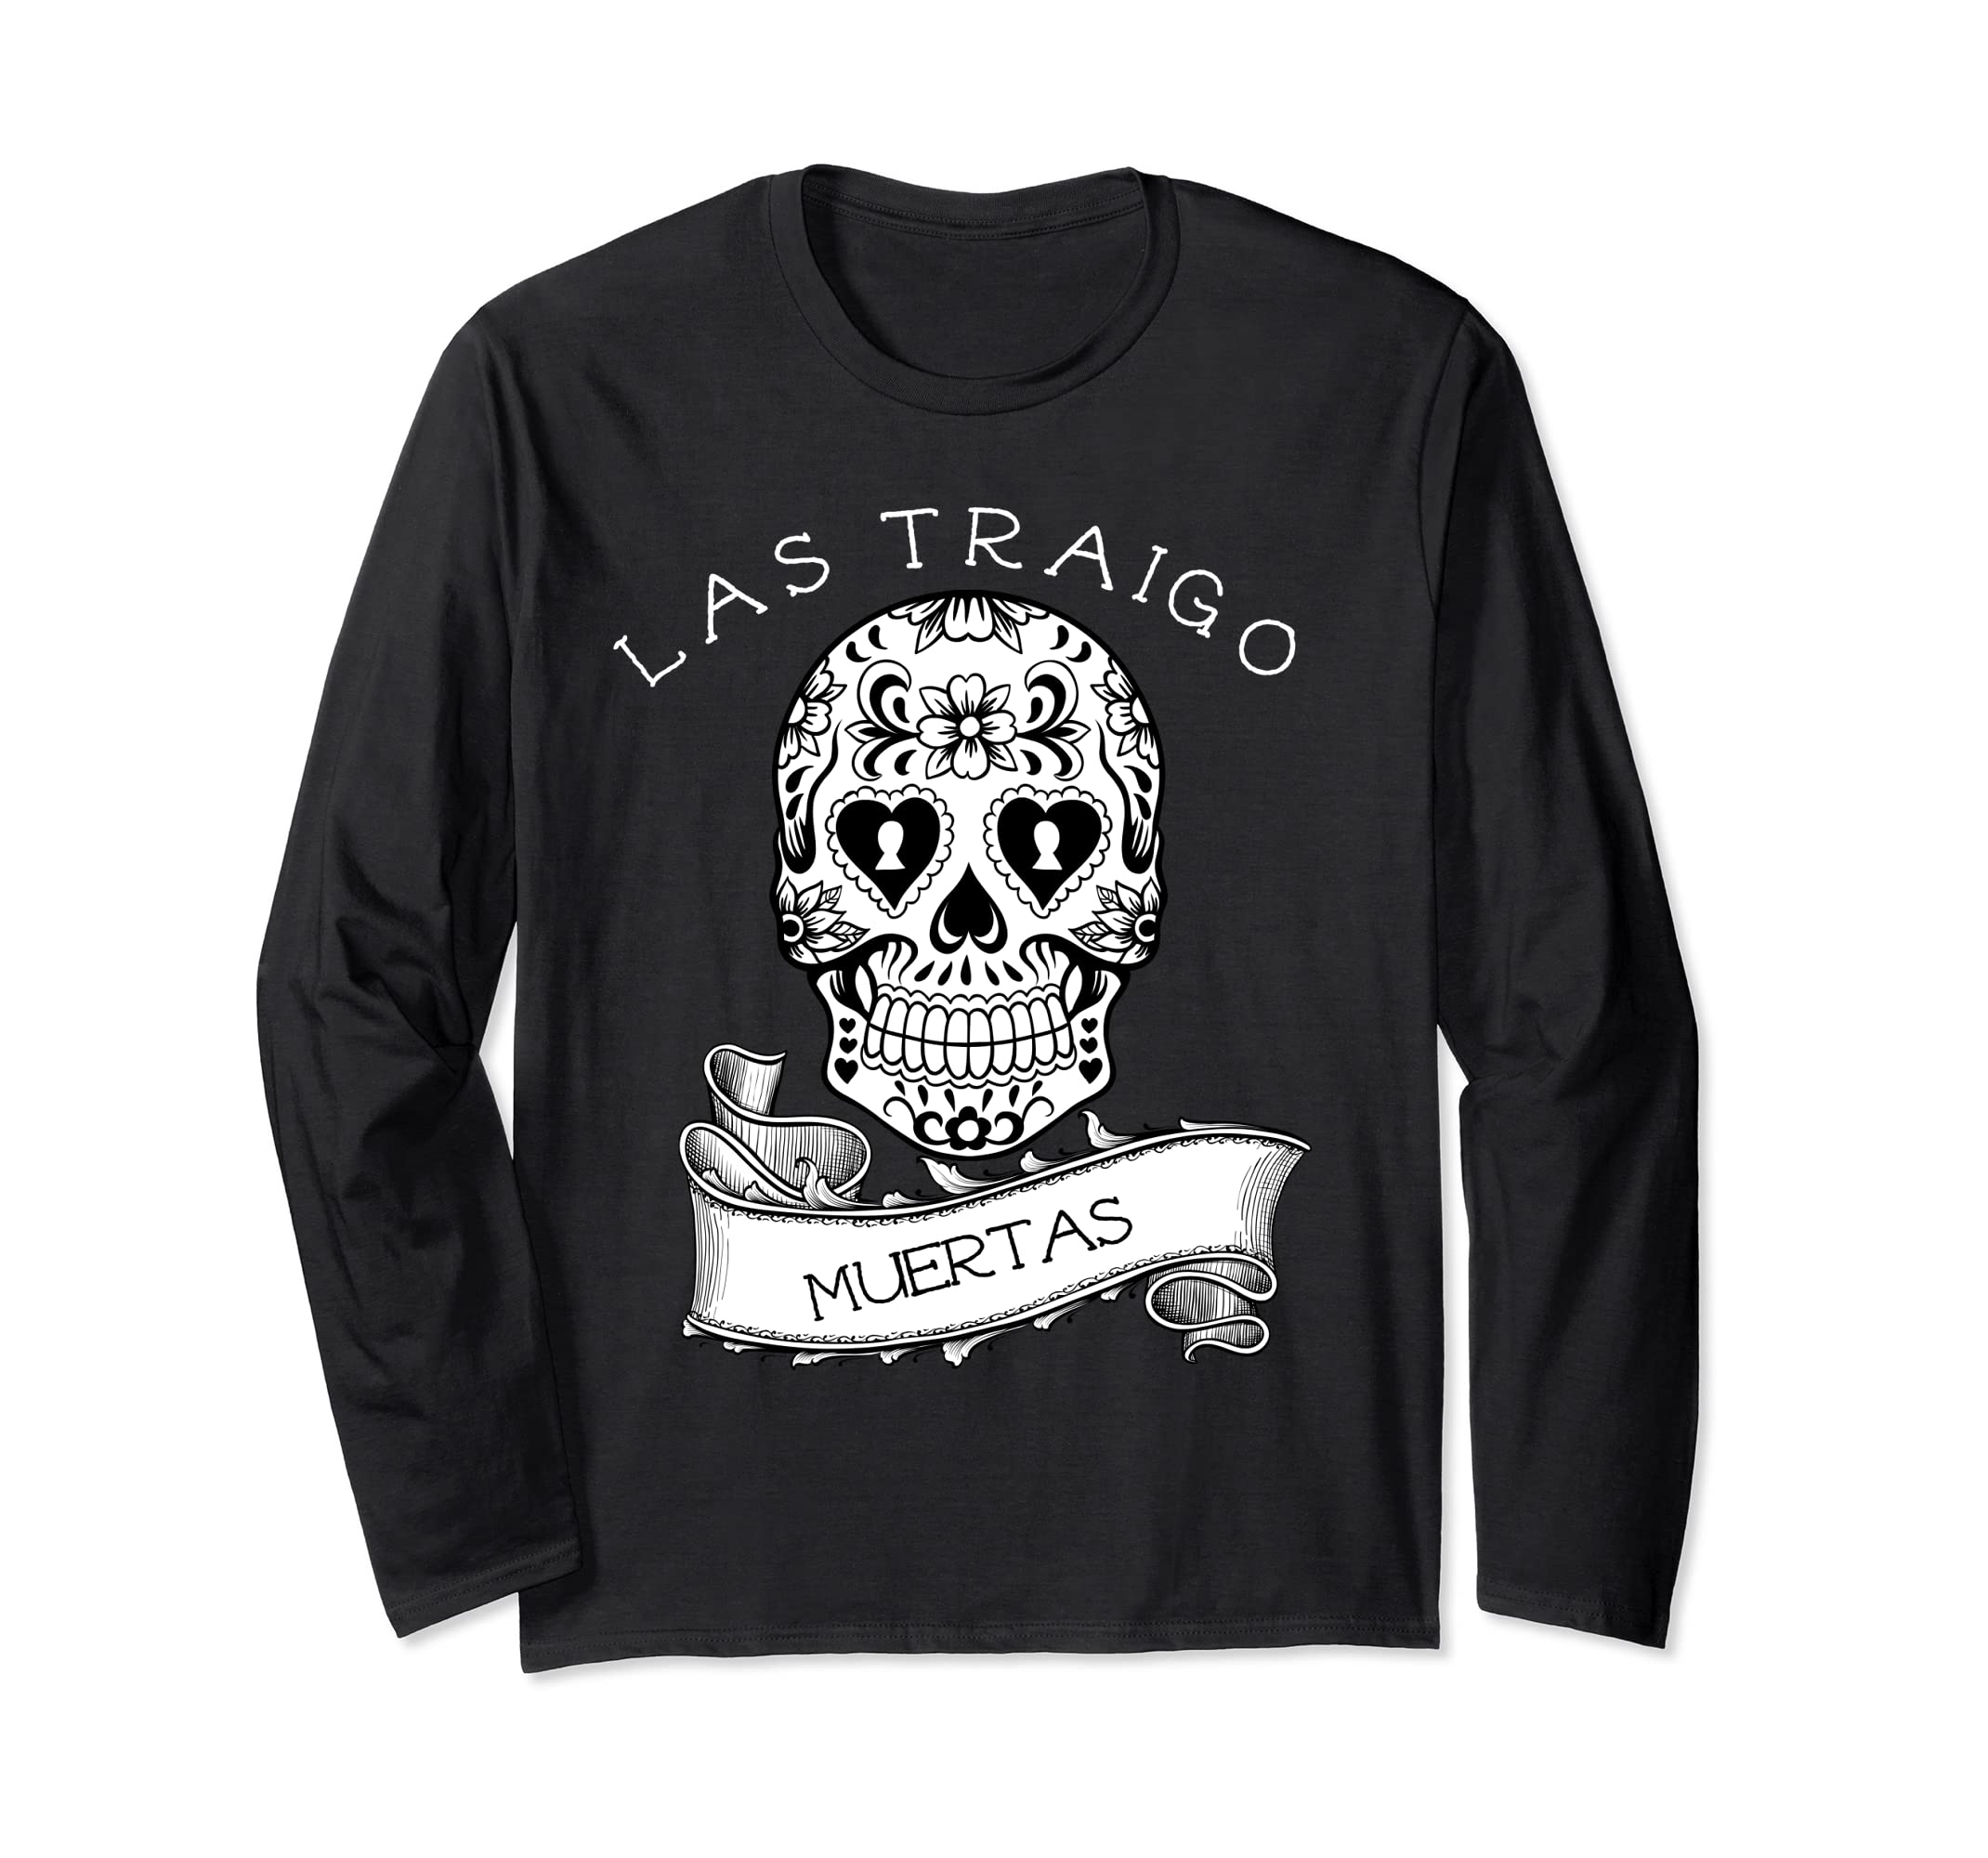 Amazon.com: Las Traigo Muertas Dia de Los Muertos TShirt Day of the Dead: Clothing